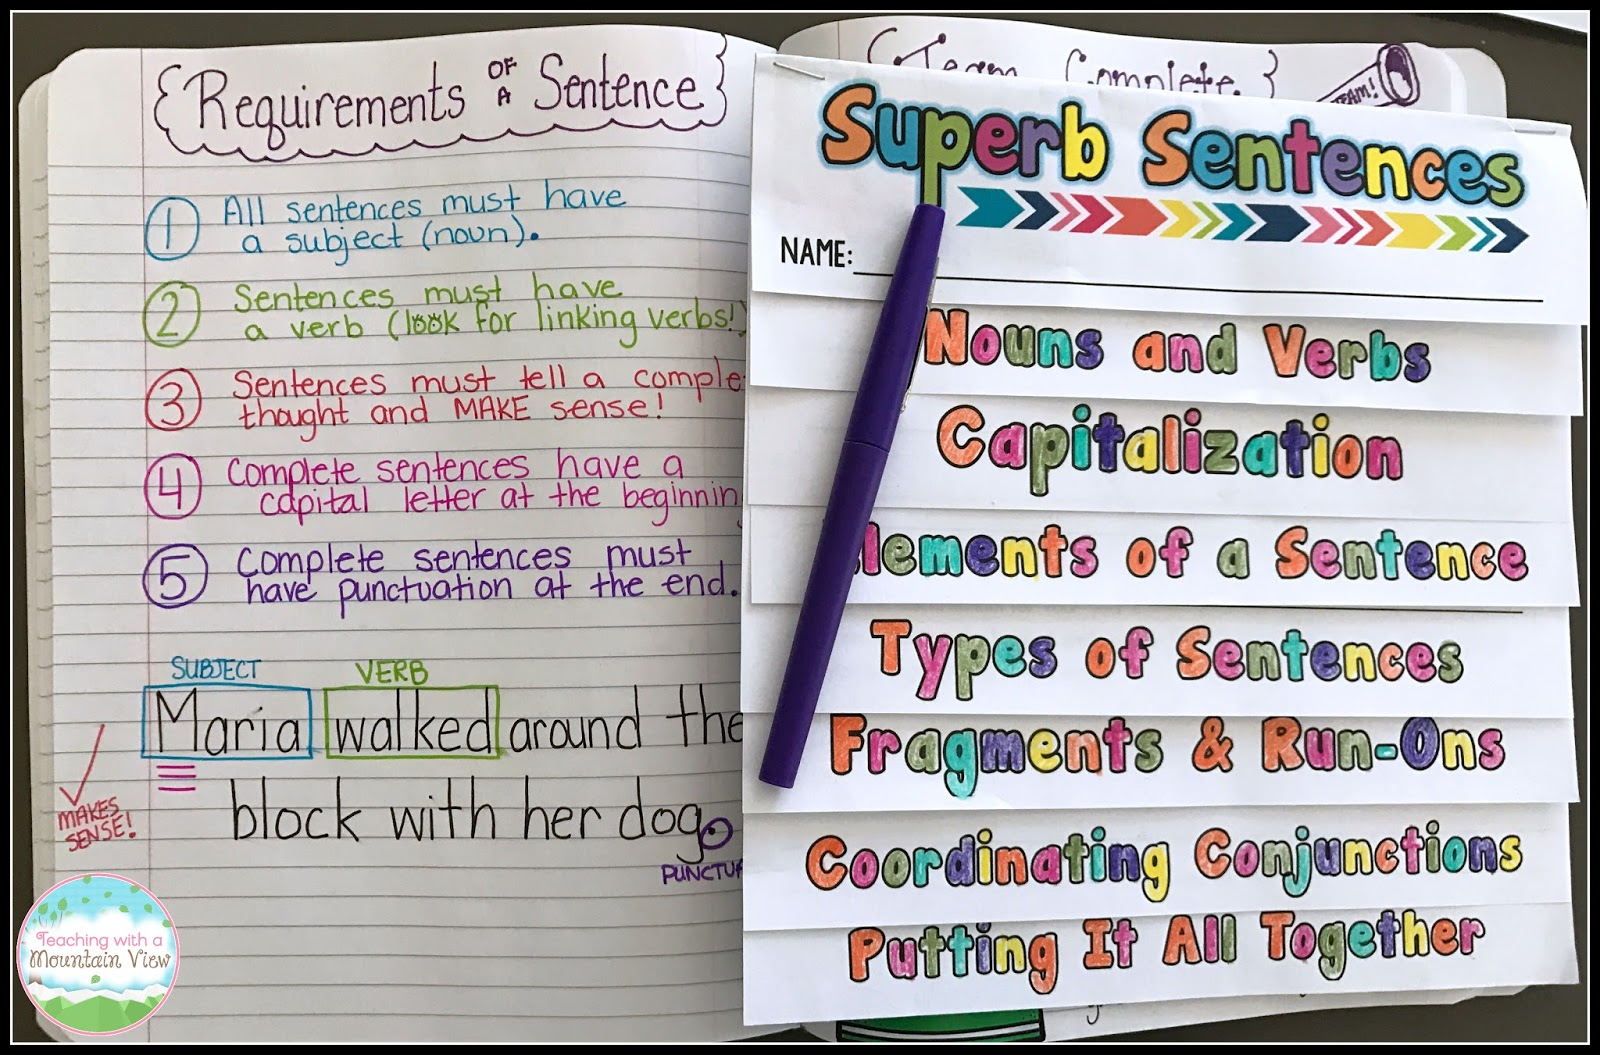 Teaching With a Mountain View: Complete Sentences and Beyond!